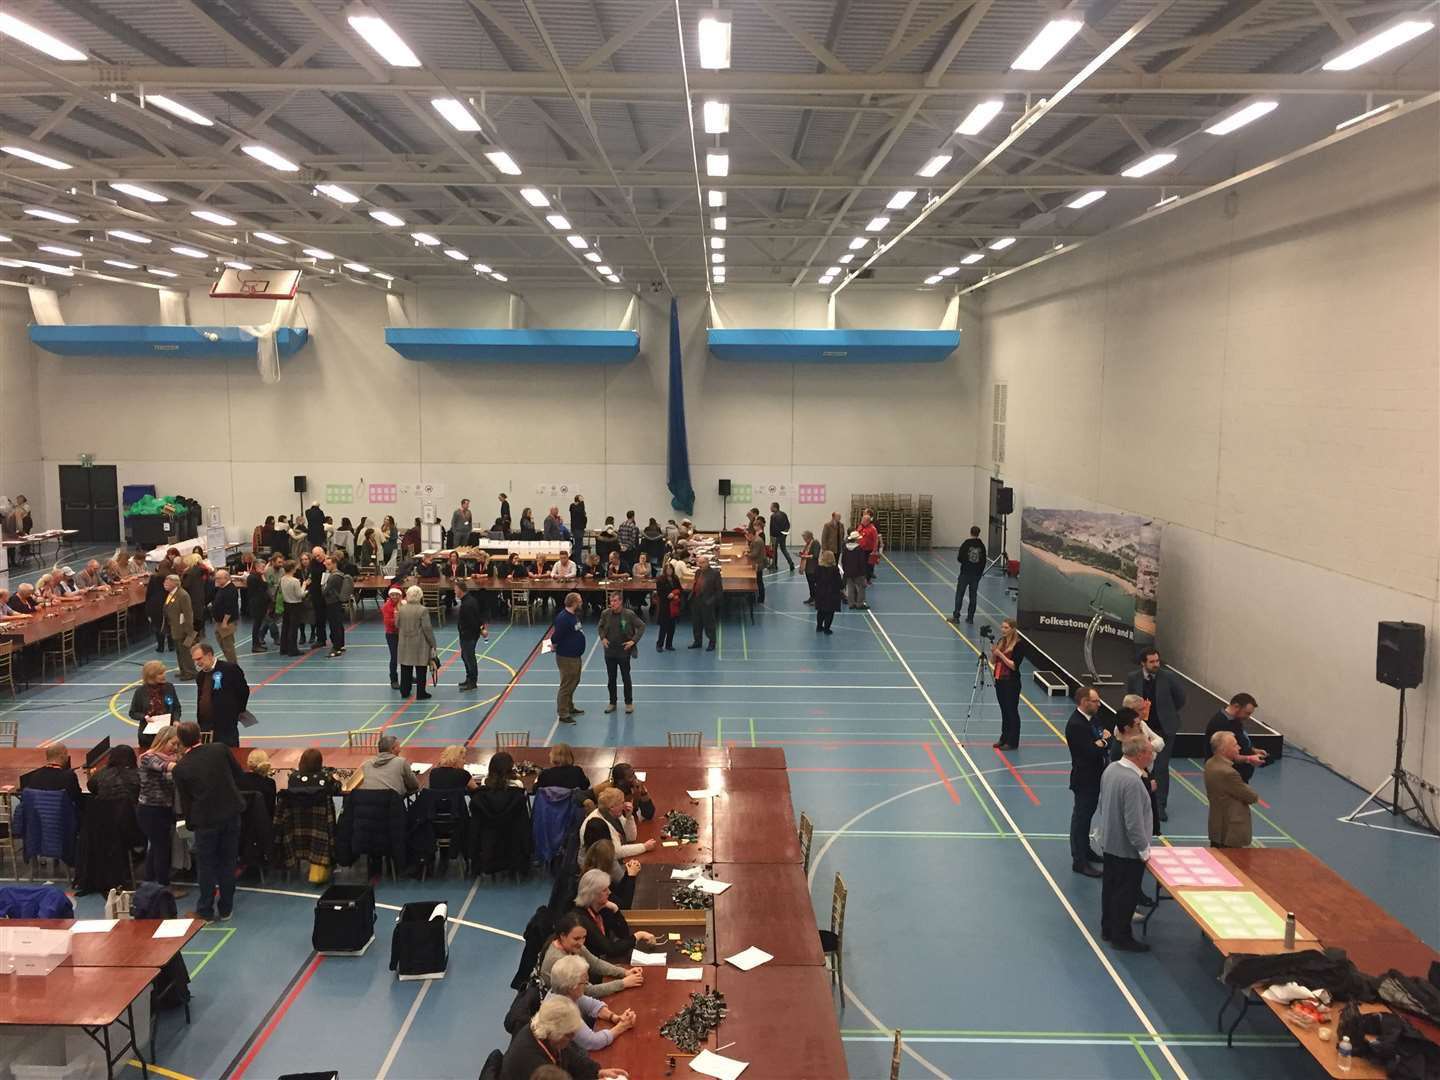 Folkestone and Hythe saw a 67% turnout this election